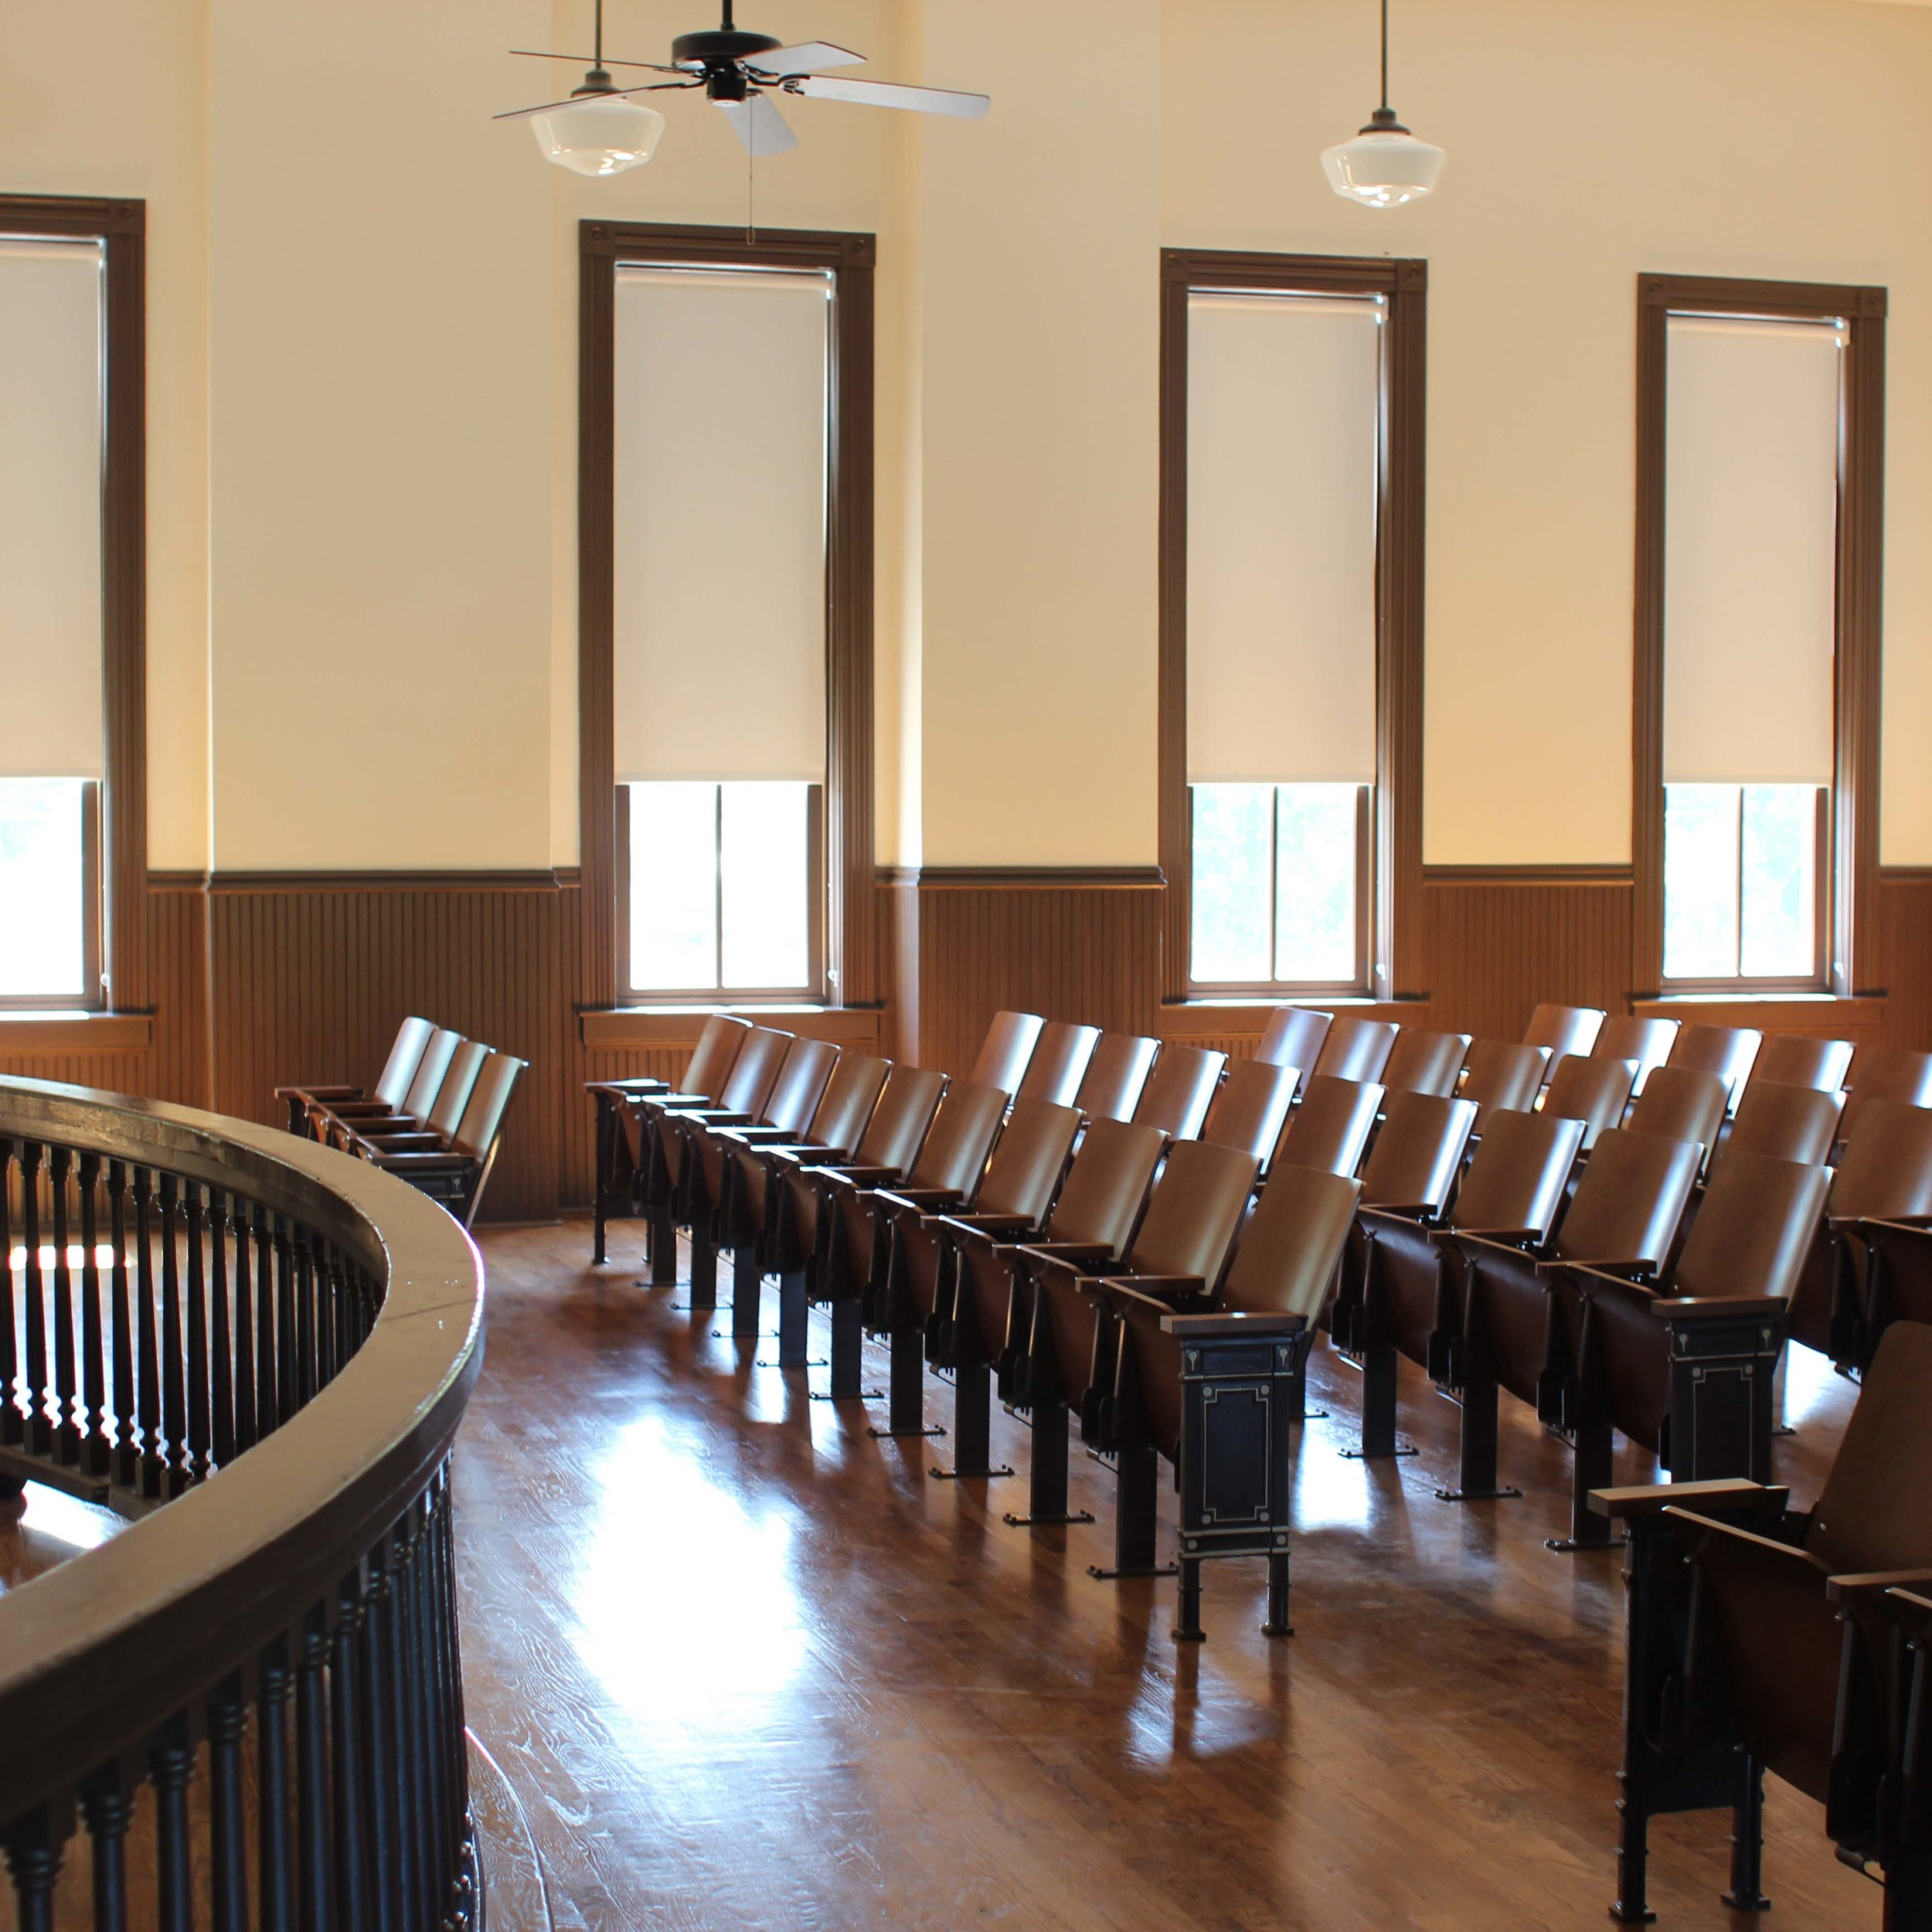 sumner-tallahatchie-courthouse-11.jpg